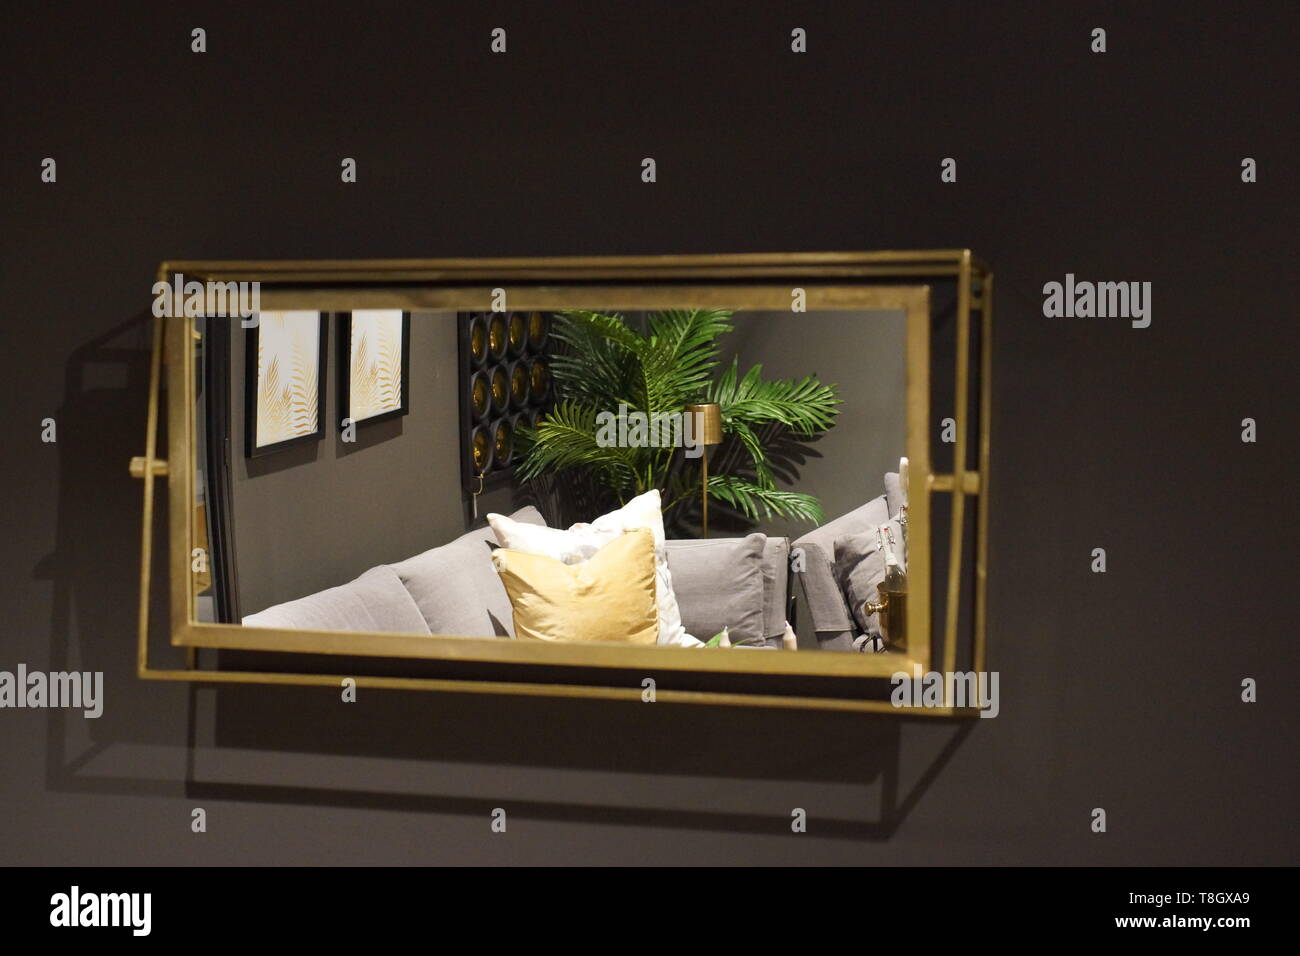 On the gray wall hangs a rectangular mirror, which reflects the room with furniture Stock Photo